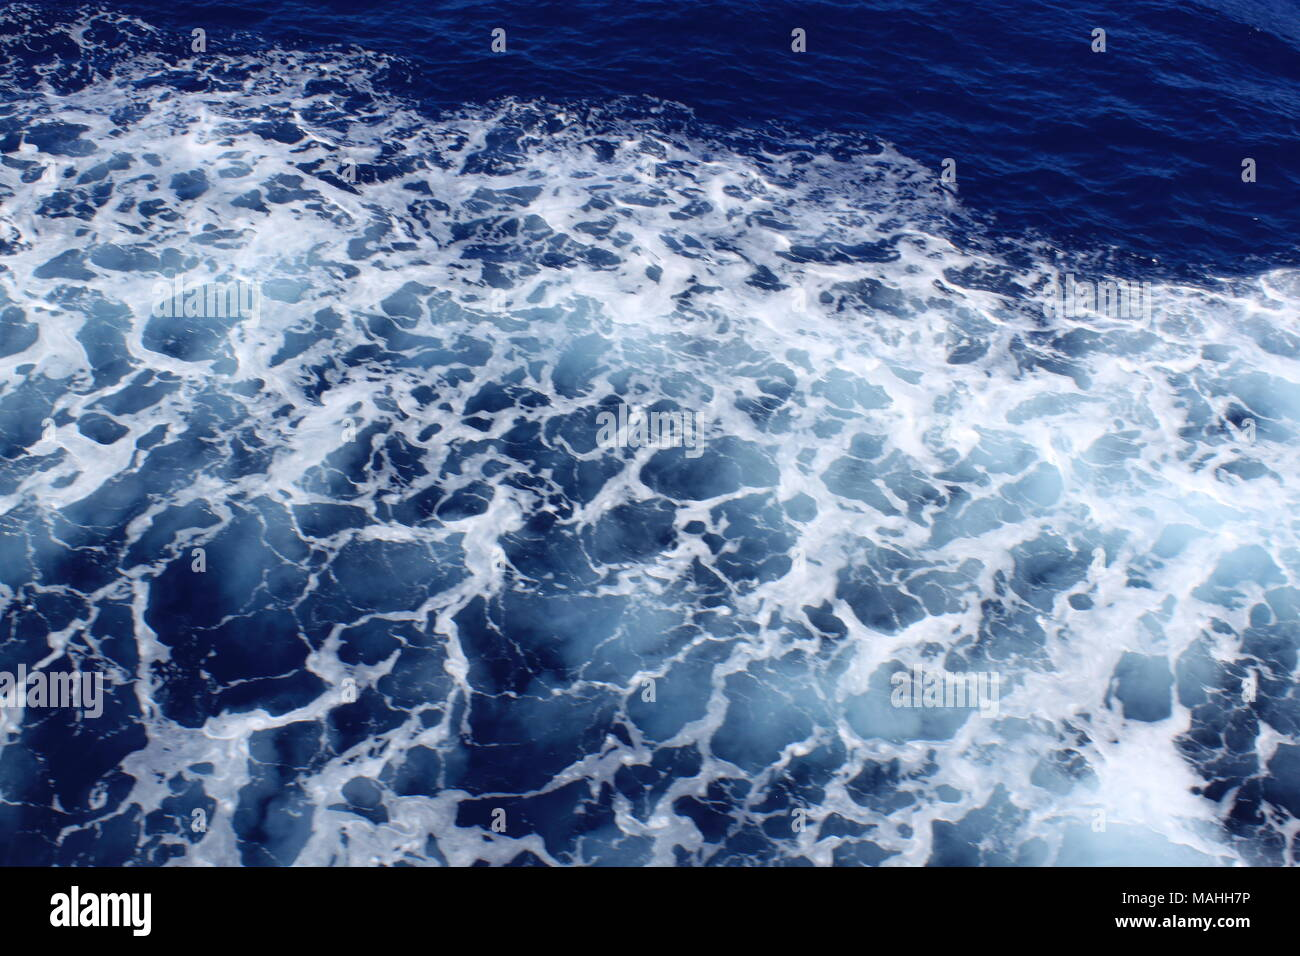 Watching the churning water on a boat trip from Tsilivi, Zante to Kefalonia, ZANTE, PETER GRANT - Stock Image